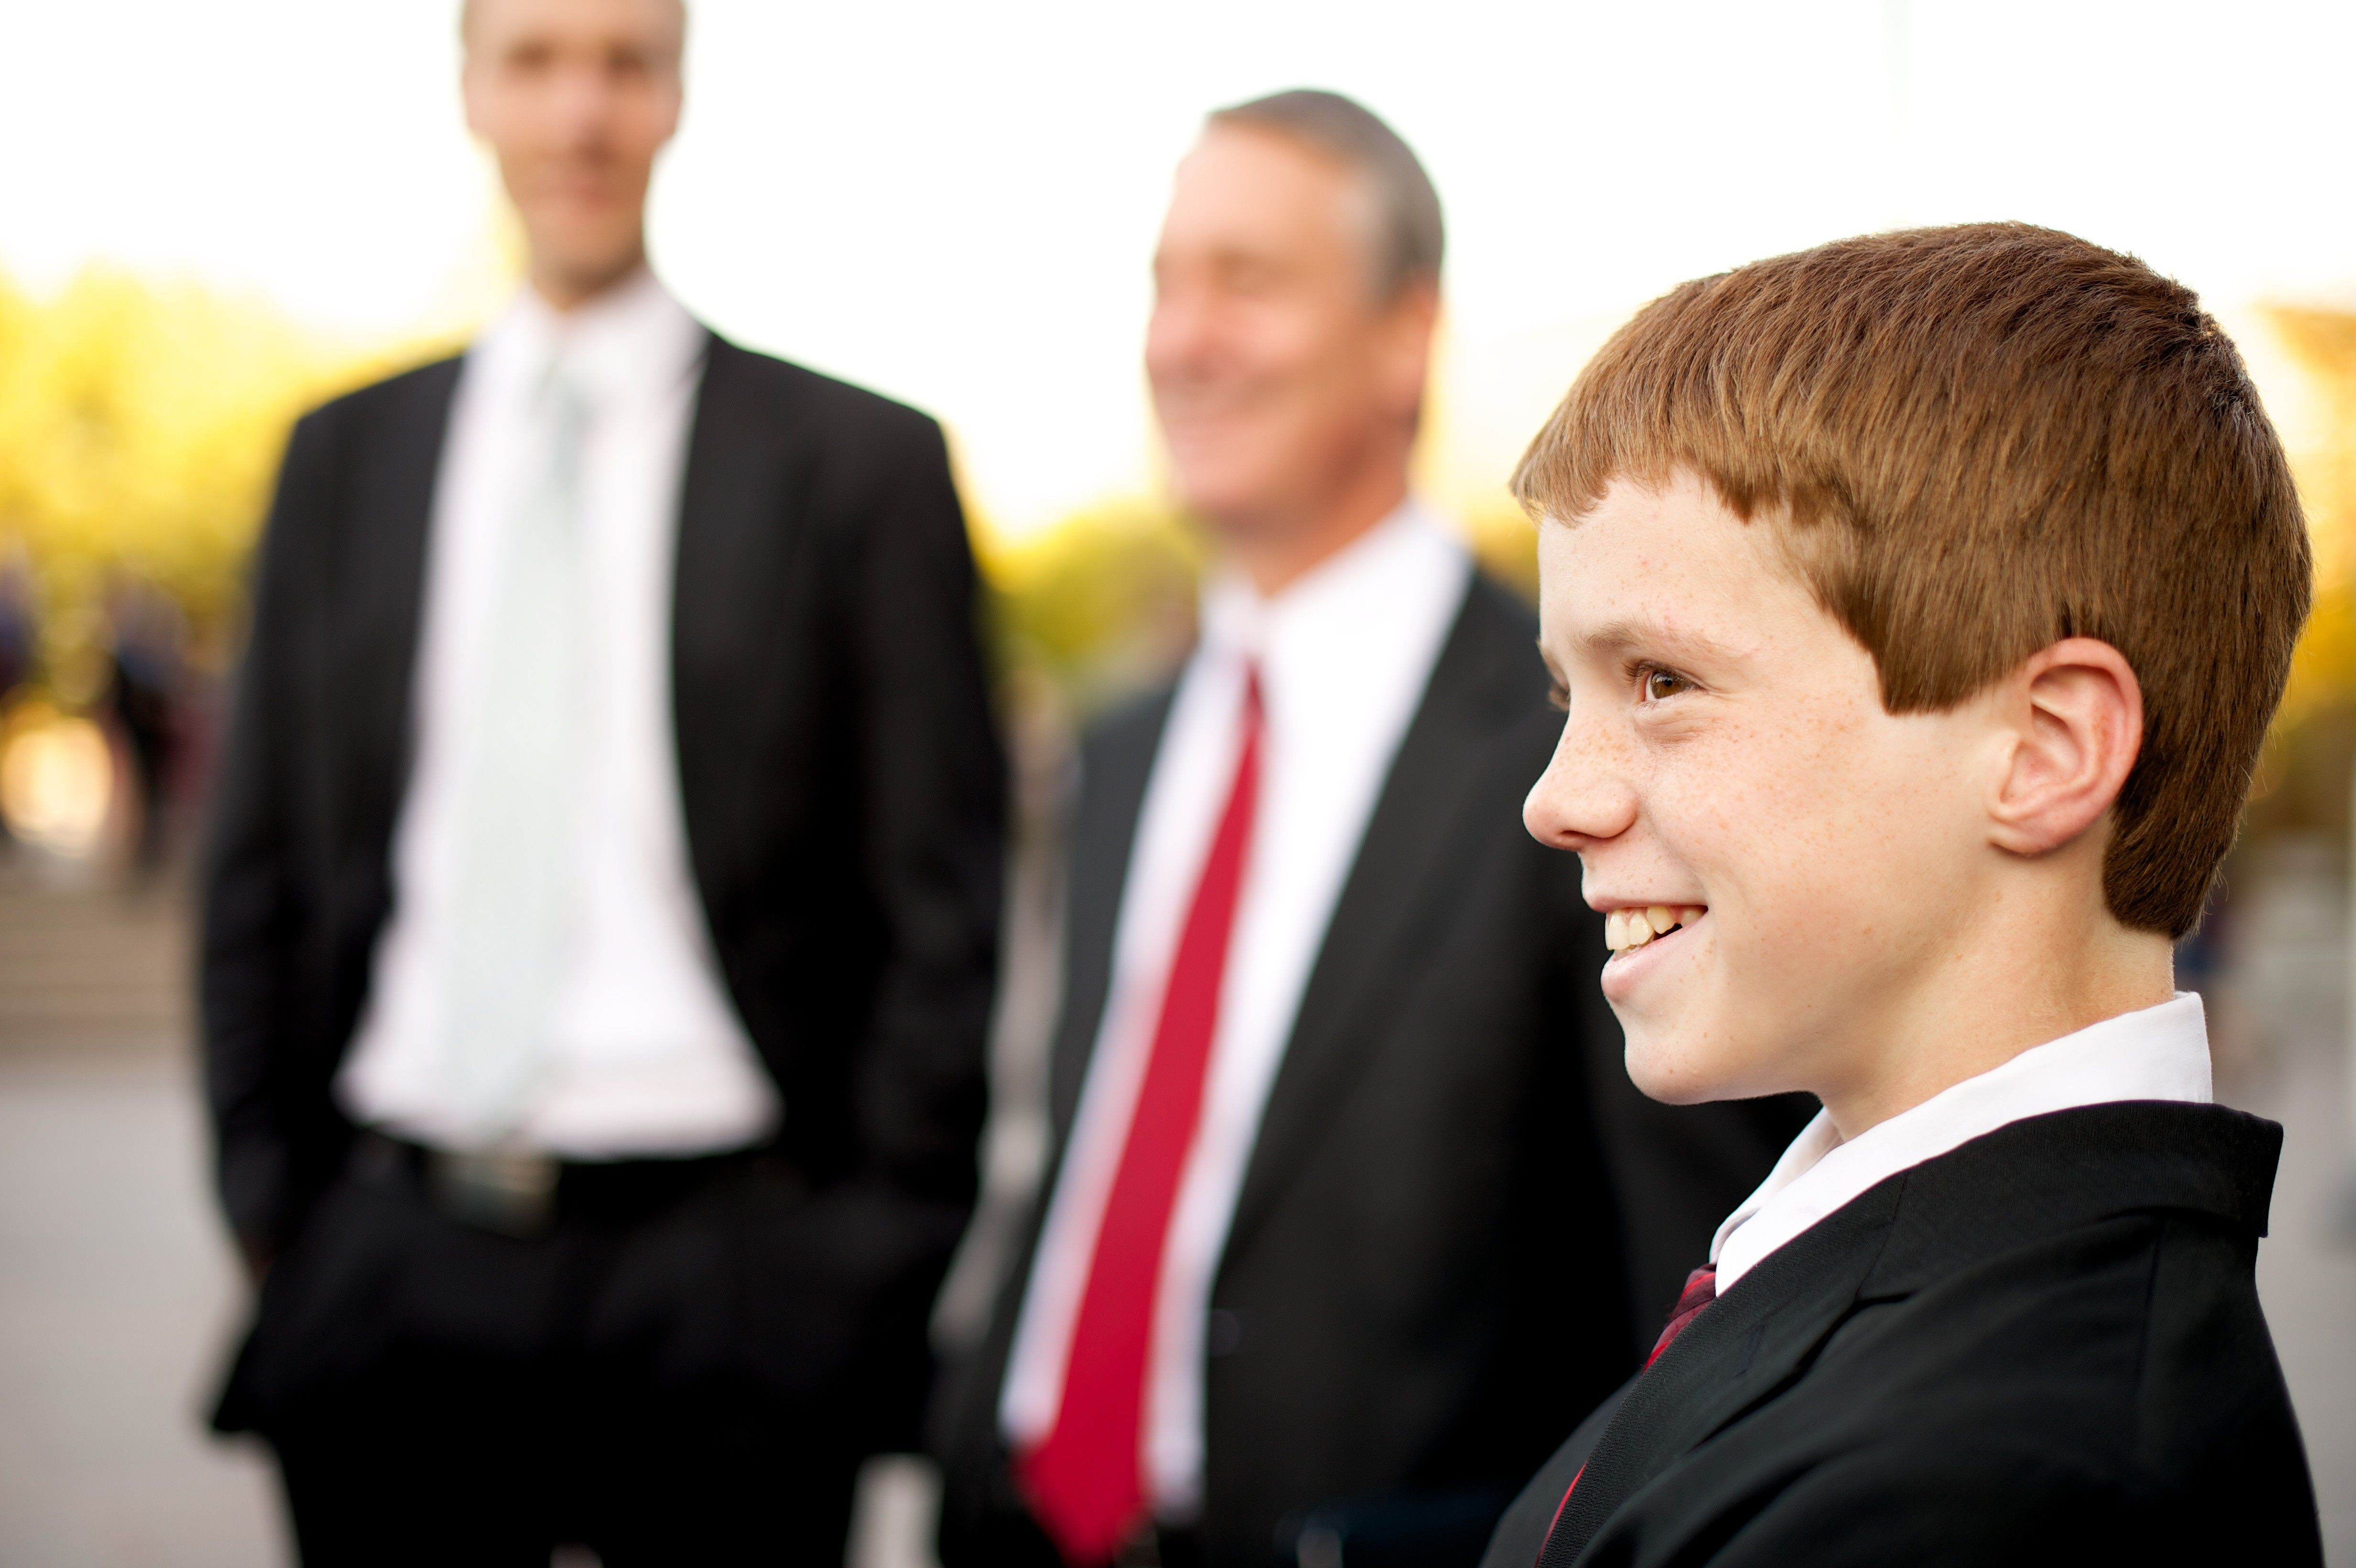 A young man in a suit stands outside of the Conference Center and smiles.